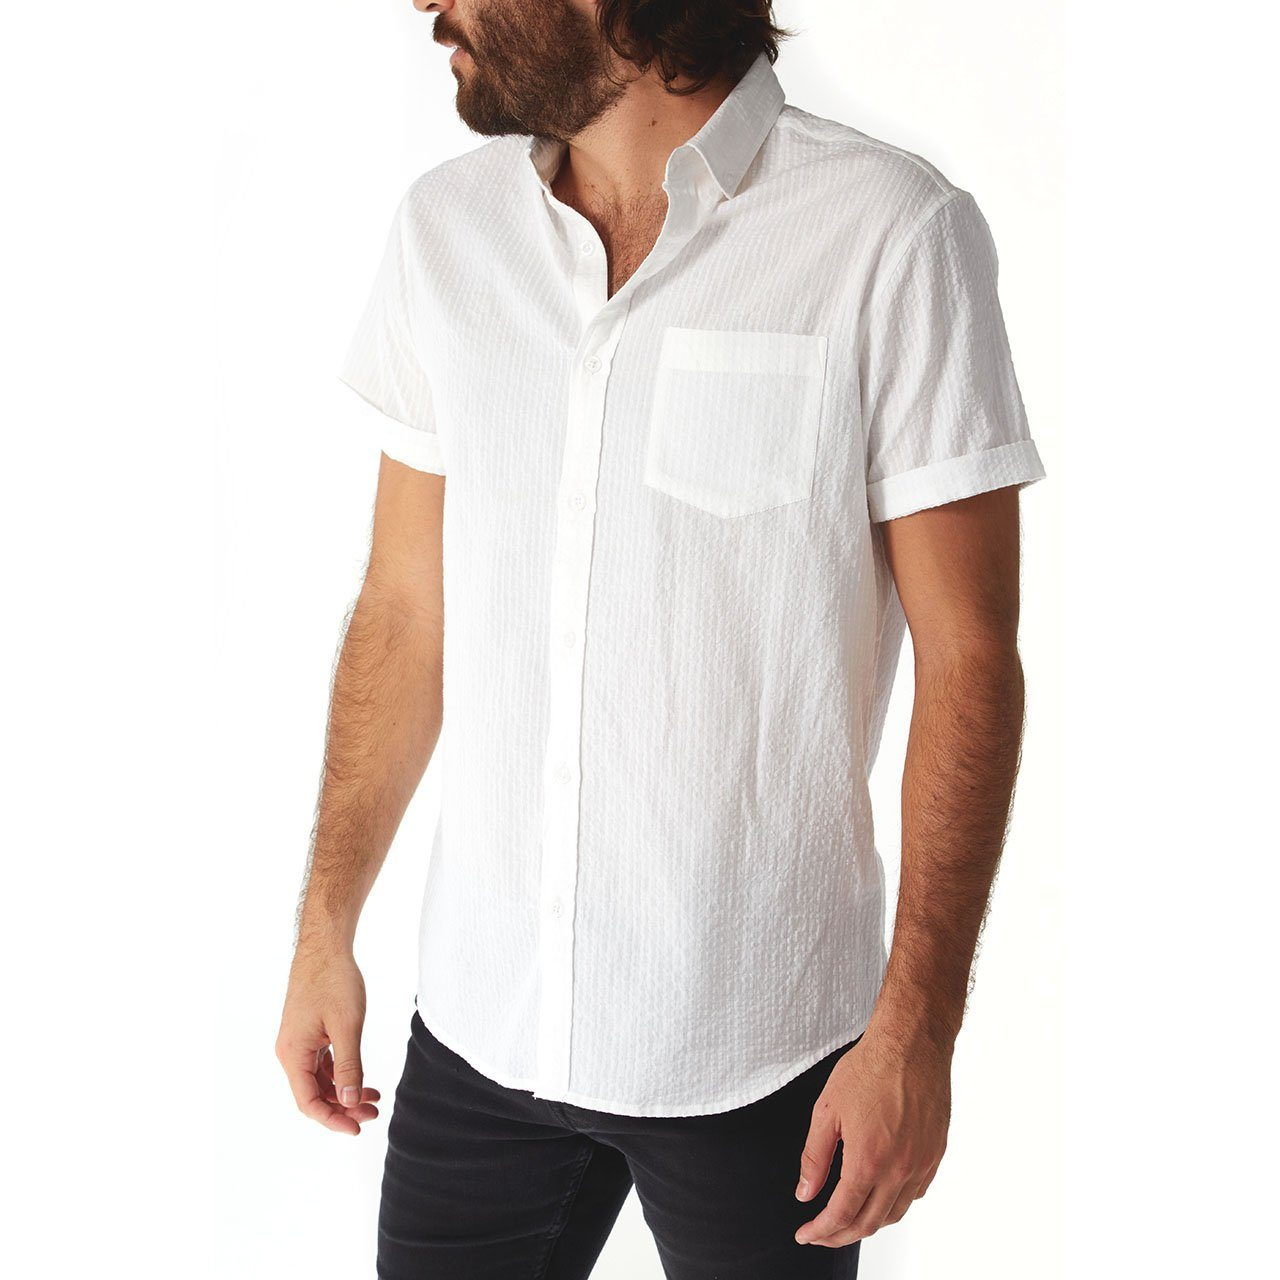 Short Sleeve Shirt, Shirt - Devin White Seersucker Striped Shirt